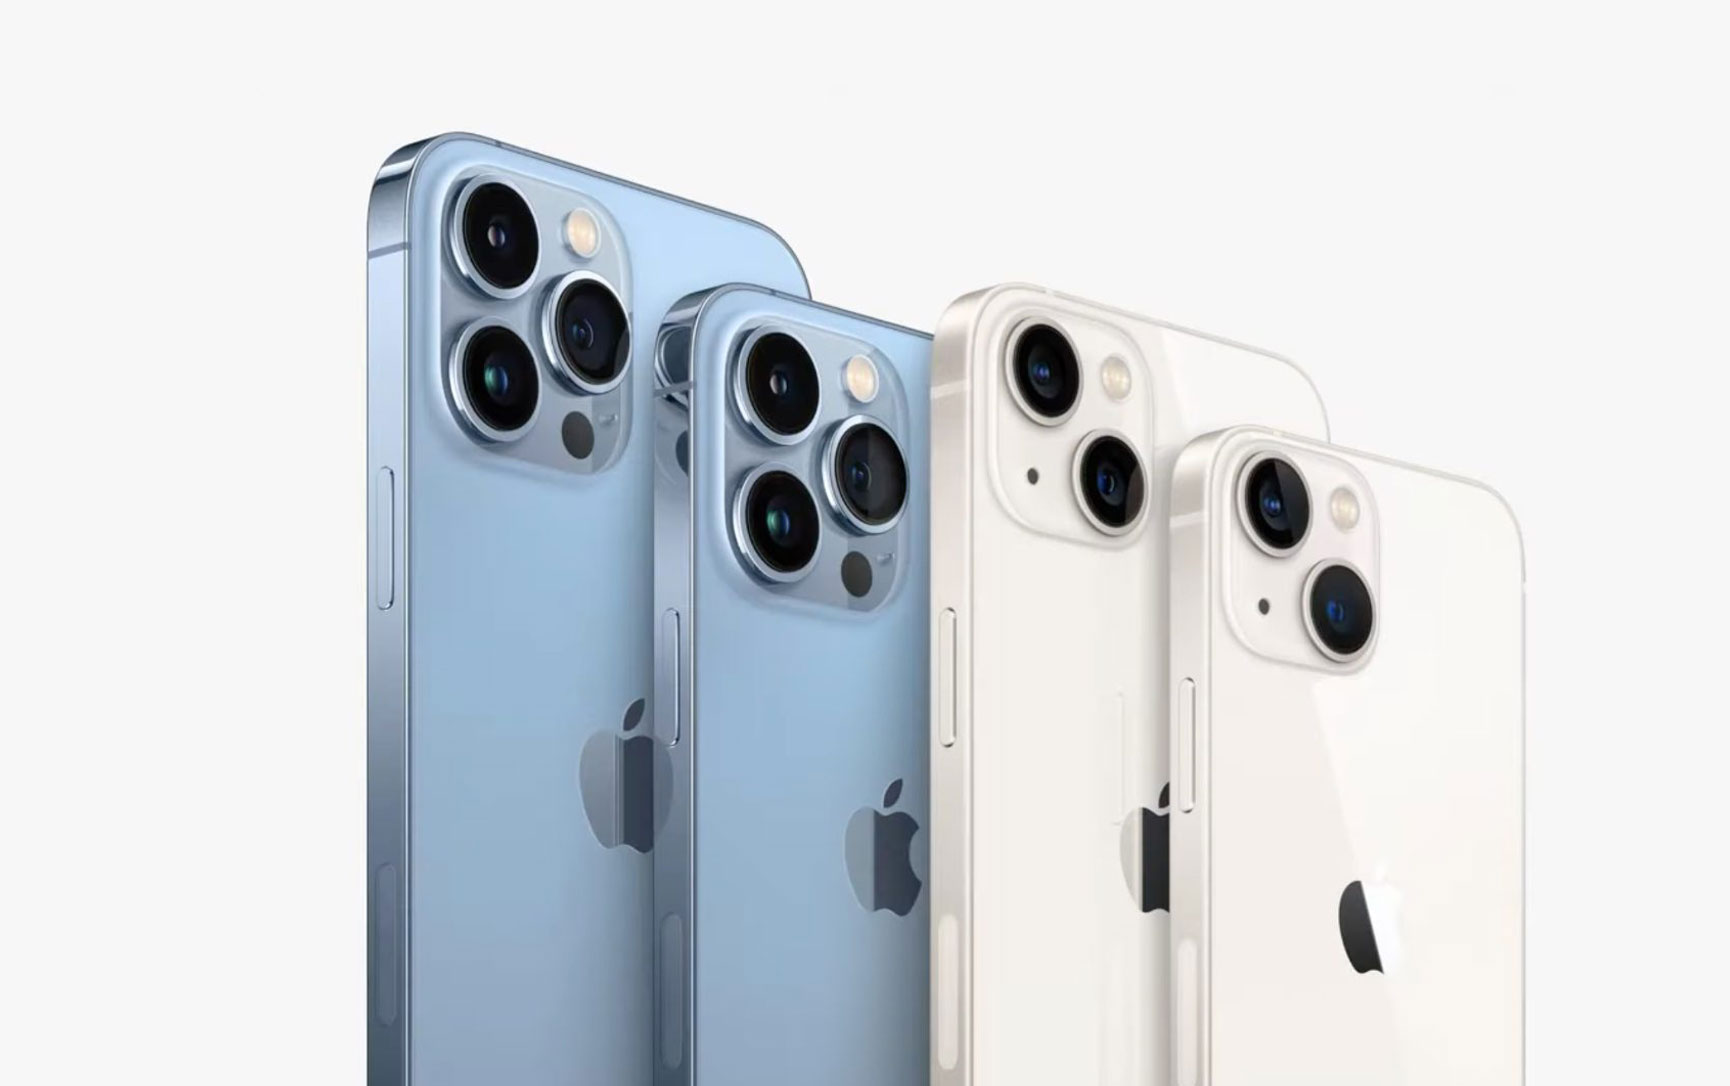 Poll: Are you buying the iPhone 13? If so, which model?